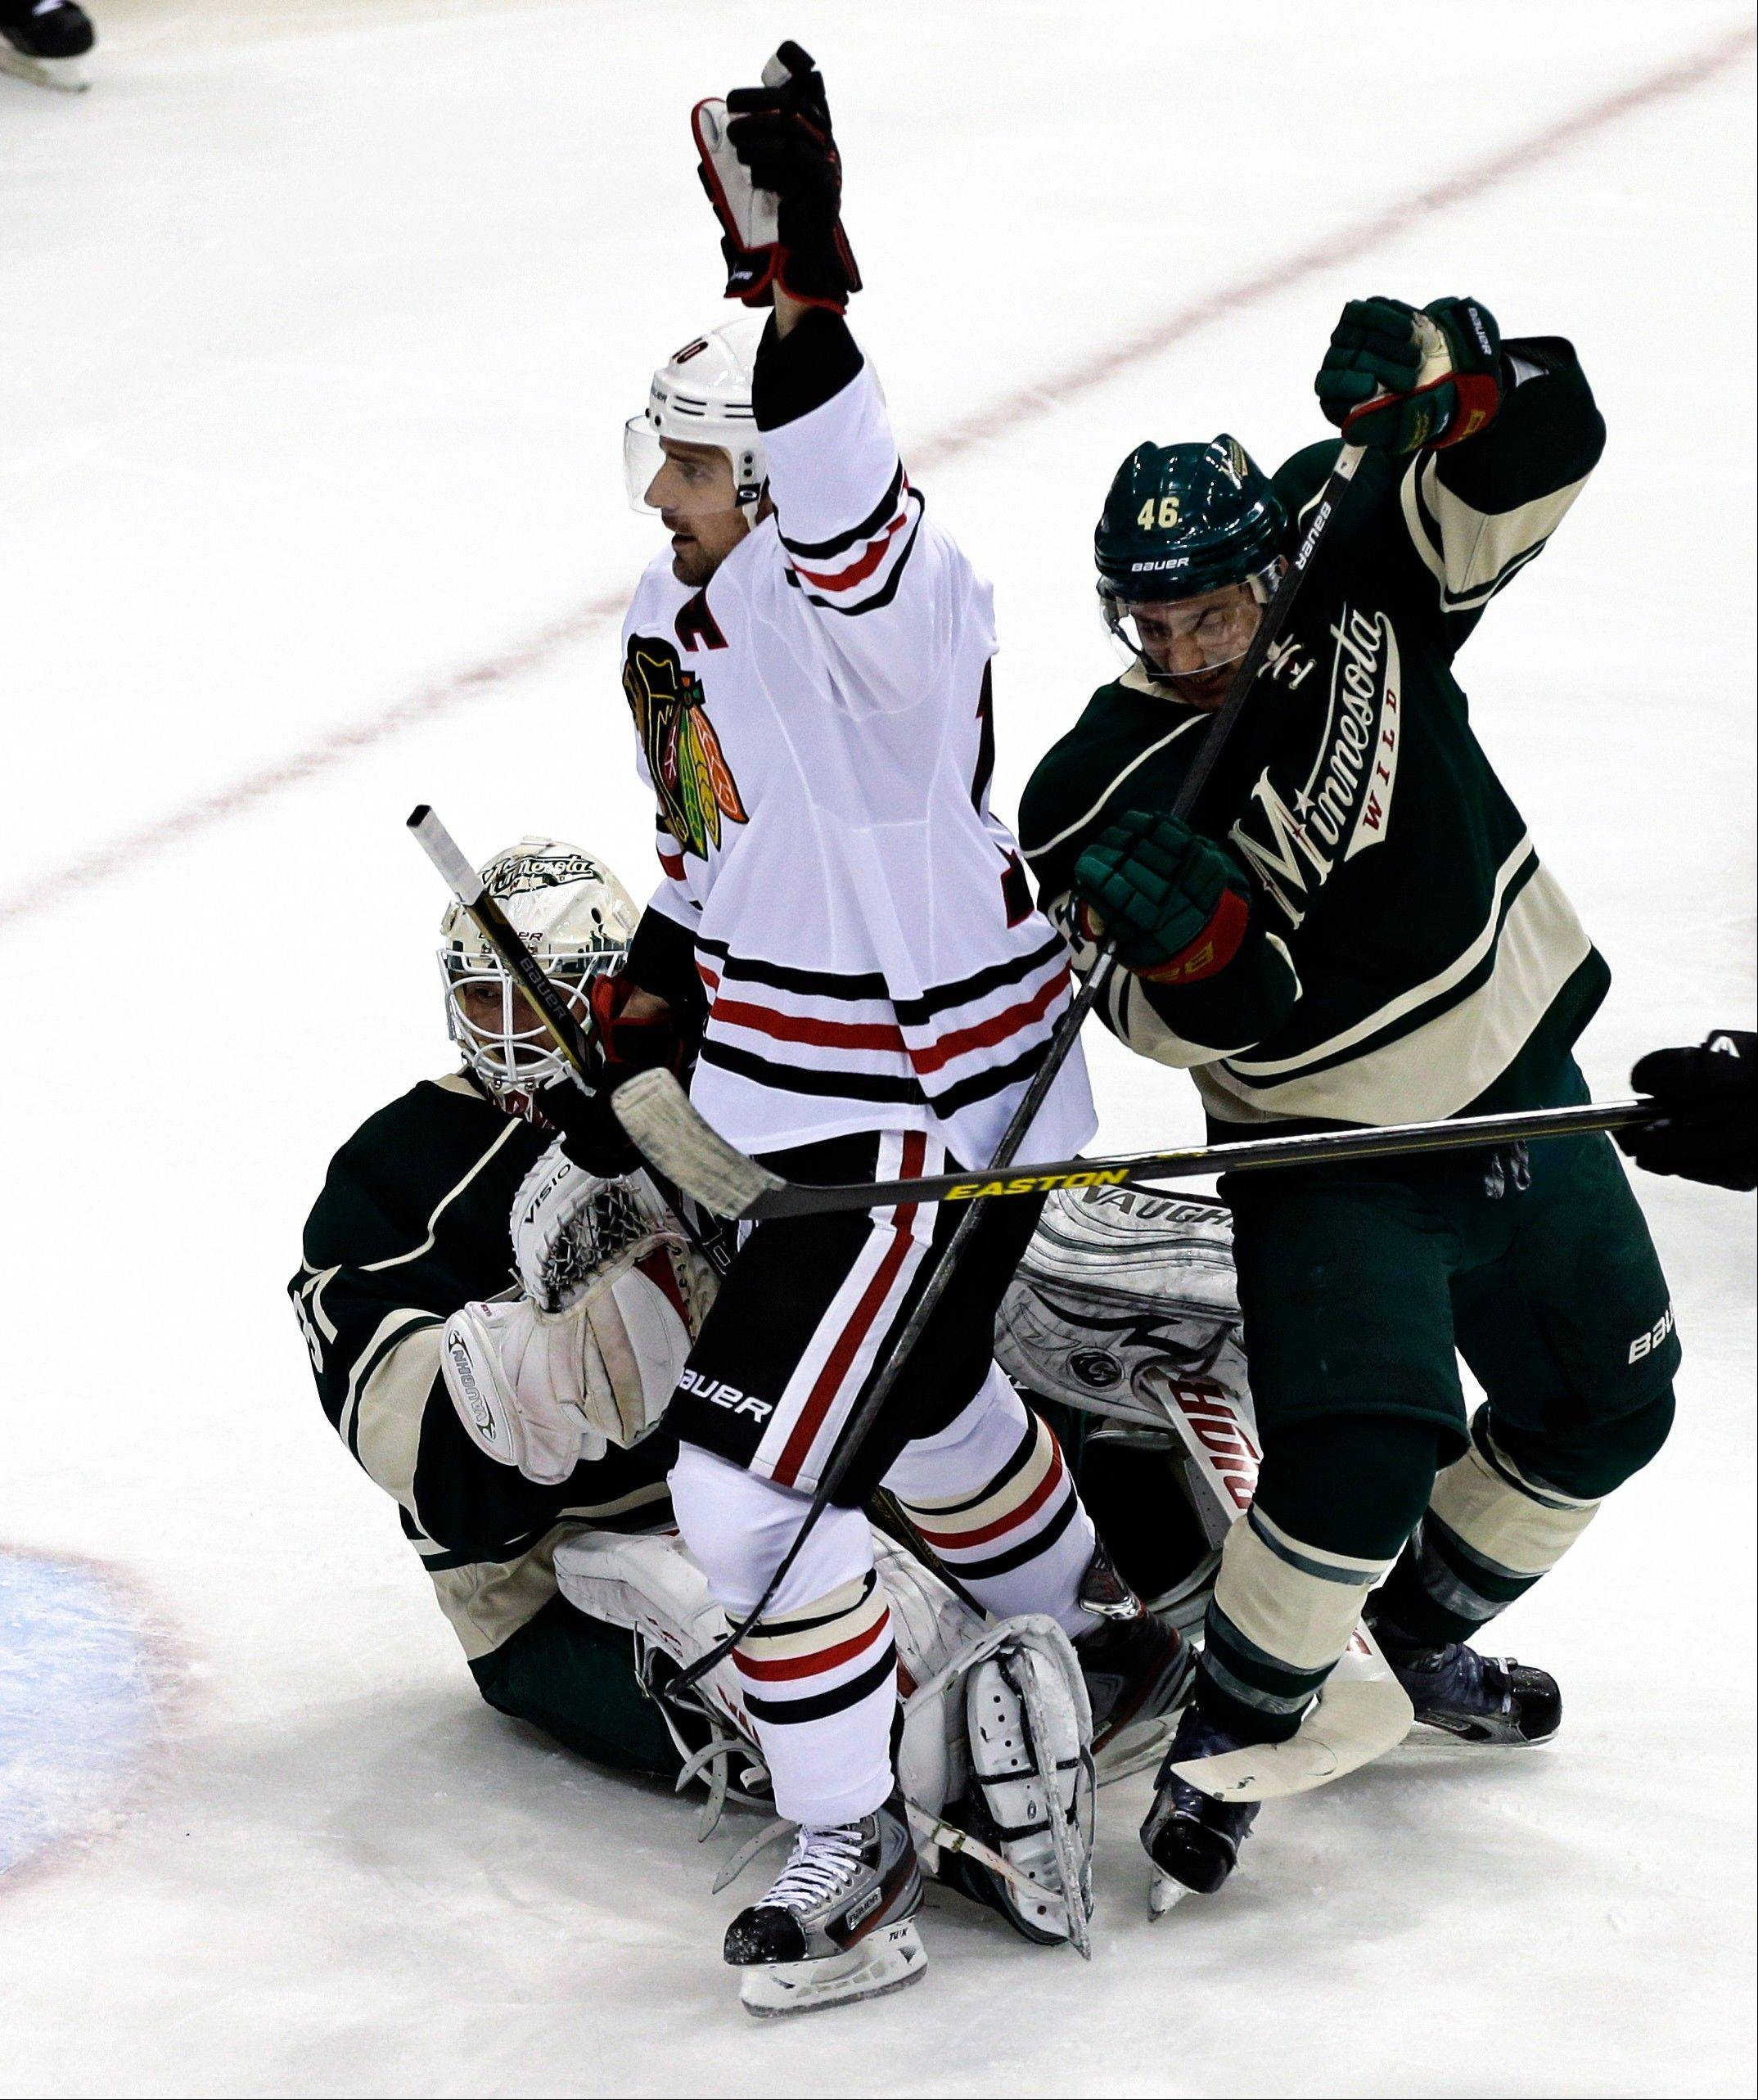 Chicago Blackhawks' Patrick Sharp, center, celebrates his goal off Minnesota Wild goalie Josh Harding, left, in the first period of Game 4 of an NHL hockey Stanley Cup playoff series, Tuesday, May 7, 2013 in St. Paul, Minn. At right is Wild's Jared Spurgeon.